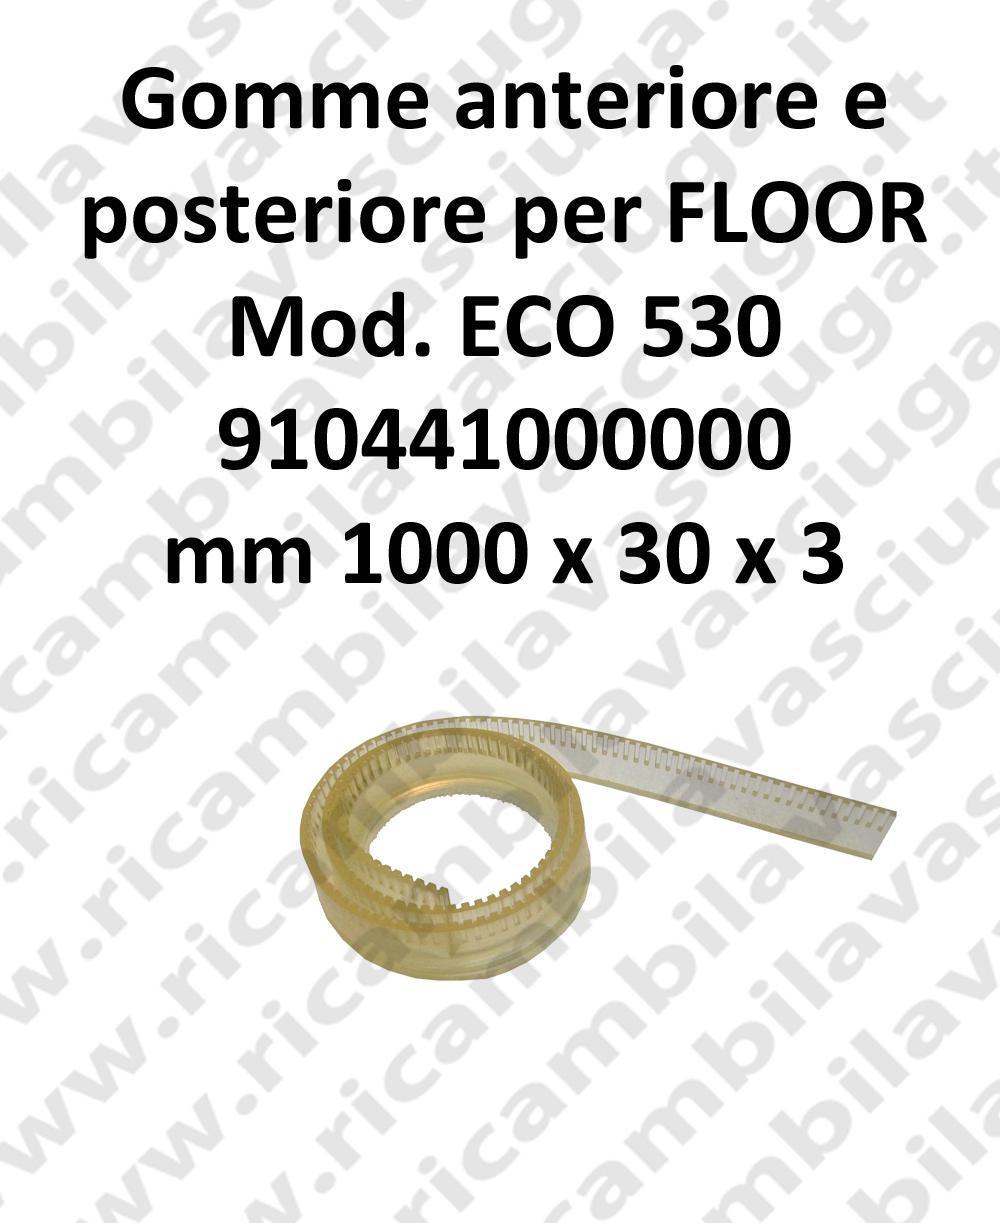 FLOOR Front Squeegee rubber e back for ECO 530